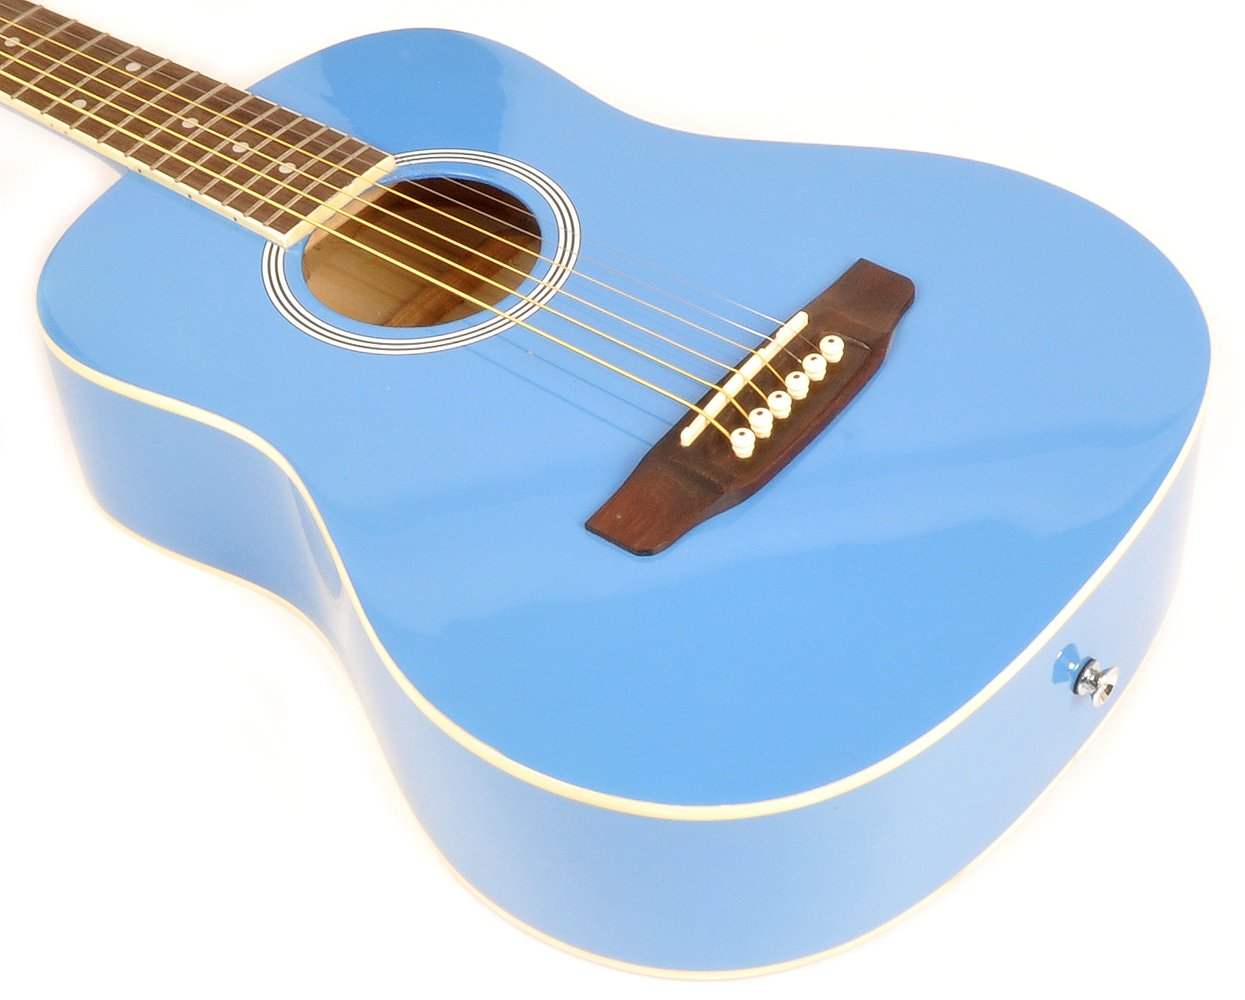 SX RSM 1 34 BBU 3/4 Size Bubblegum Blue Acoustic Guitar Package, Black with Carry Bag, Strap, and Guitar Picks Included by SX (Image #4)